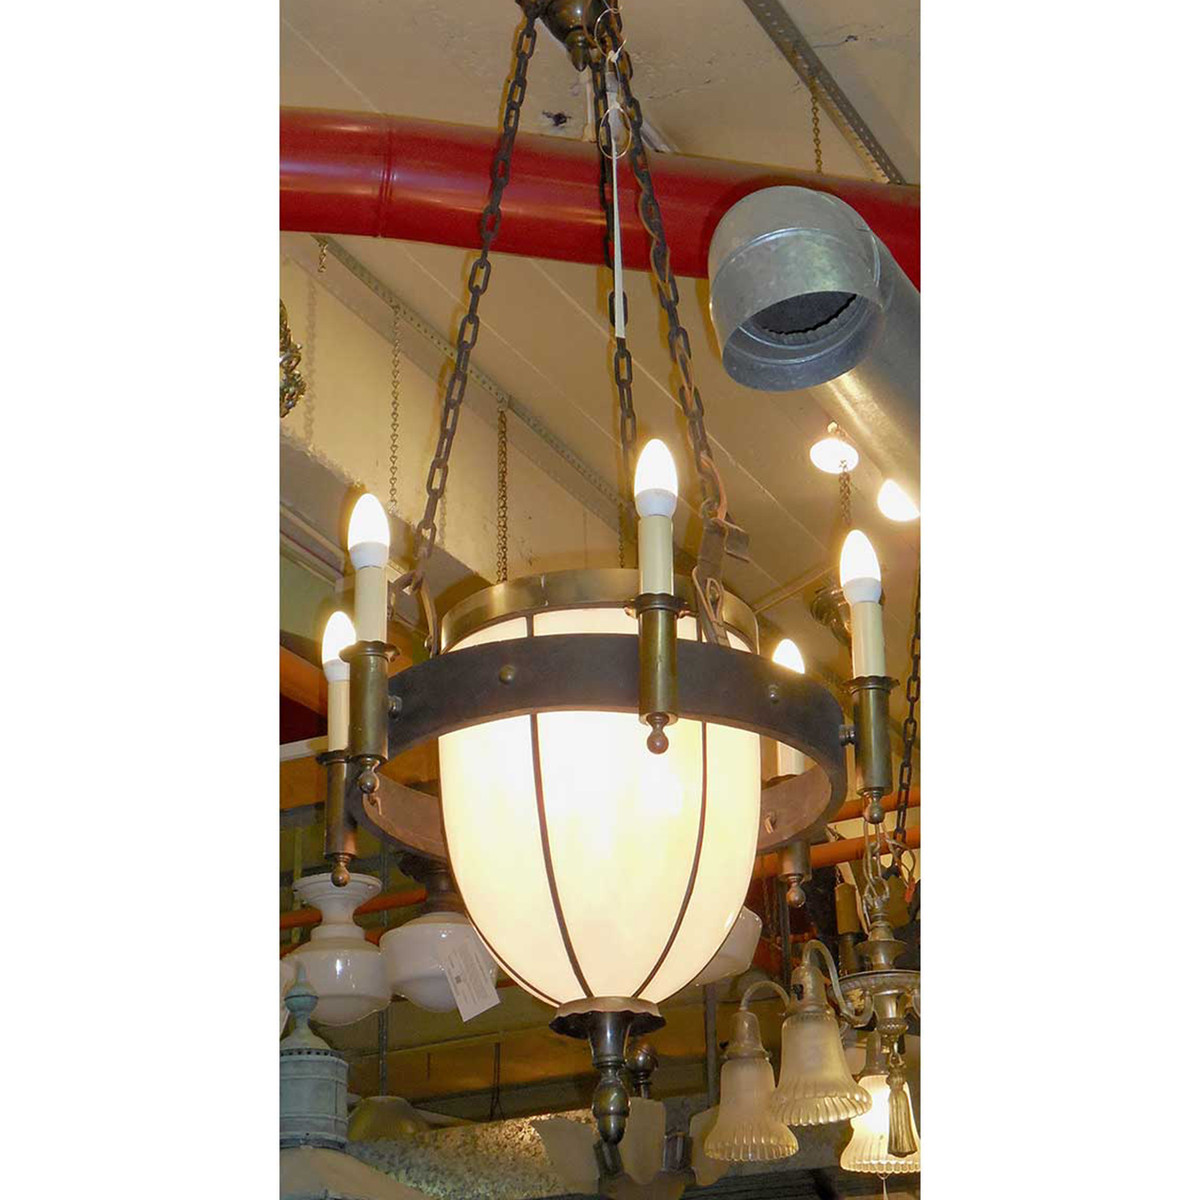 L14175 - Antique Revival Period Bent Panel and Candle Hanging Fixture - Unrestored